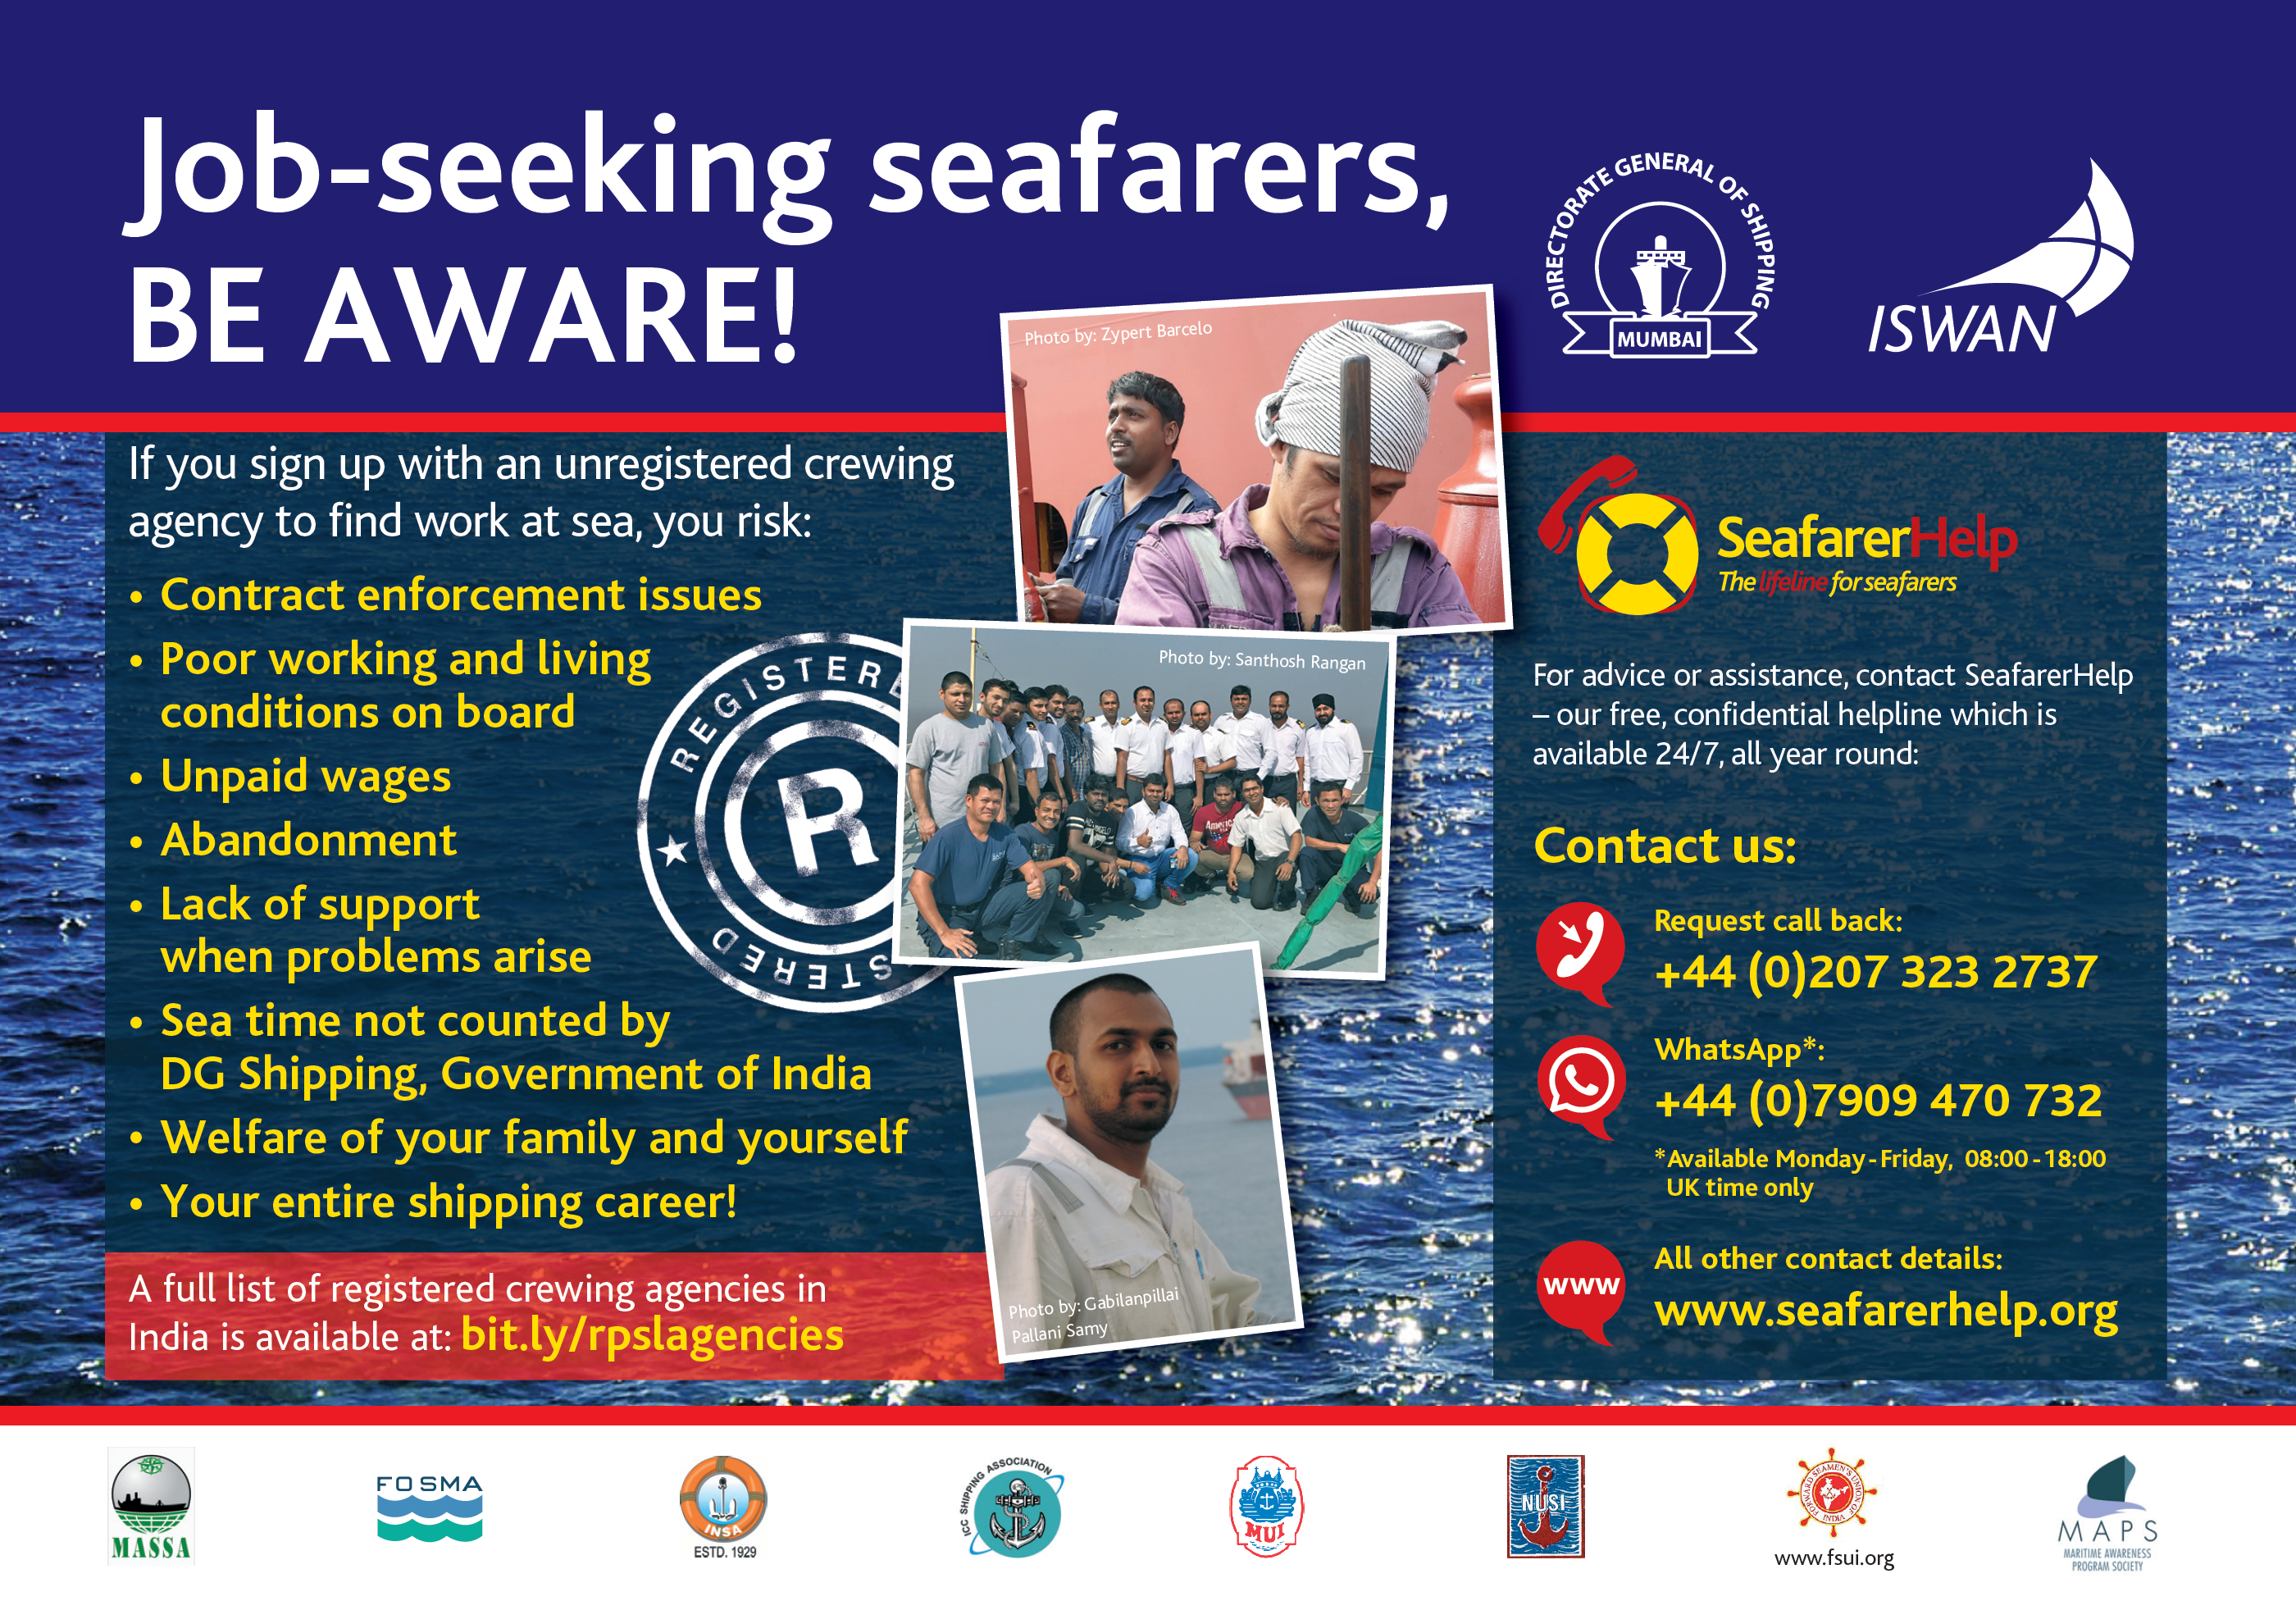 Seeking employment | SeafarerHelp